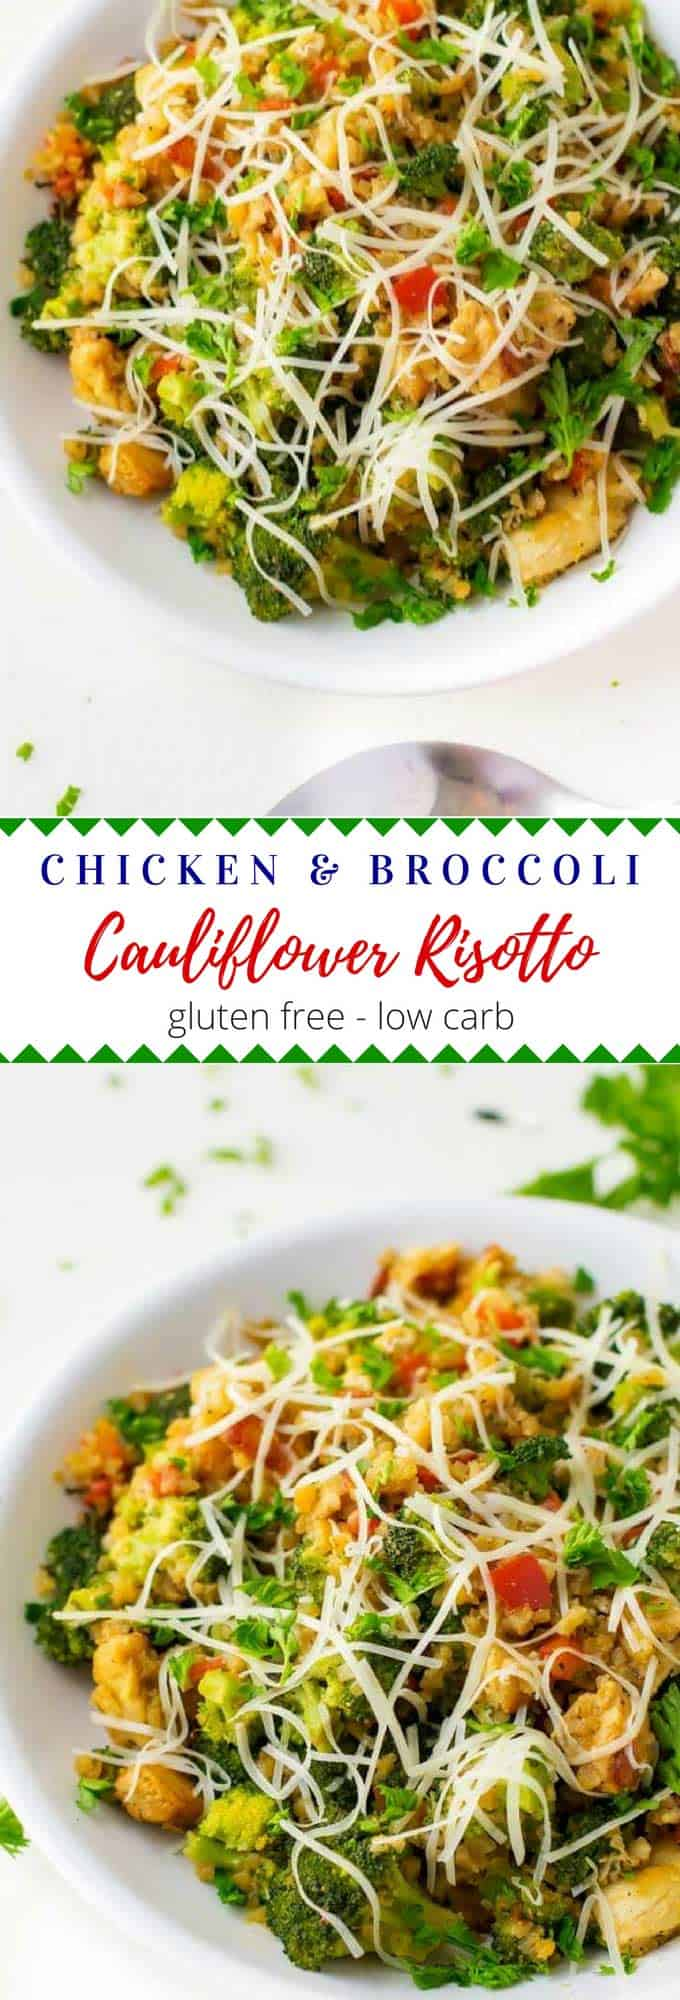 This one-pan recipe for Chicken Broccoli Cauliflower Risotto is low-carb and comes together in about 20 minutes.  It is an easy weeknight recipe that is perfect for a clean eating diet.  Gluten-Free and Keto Friendly.